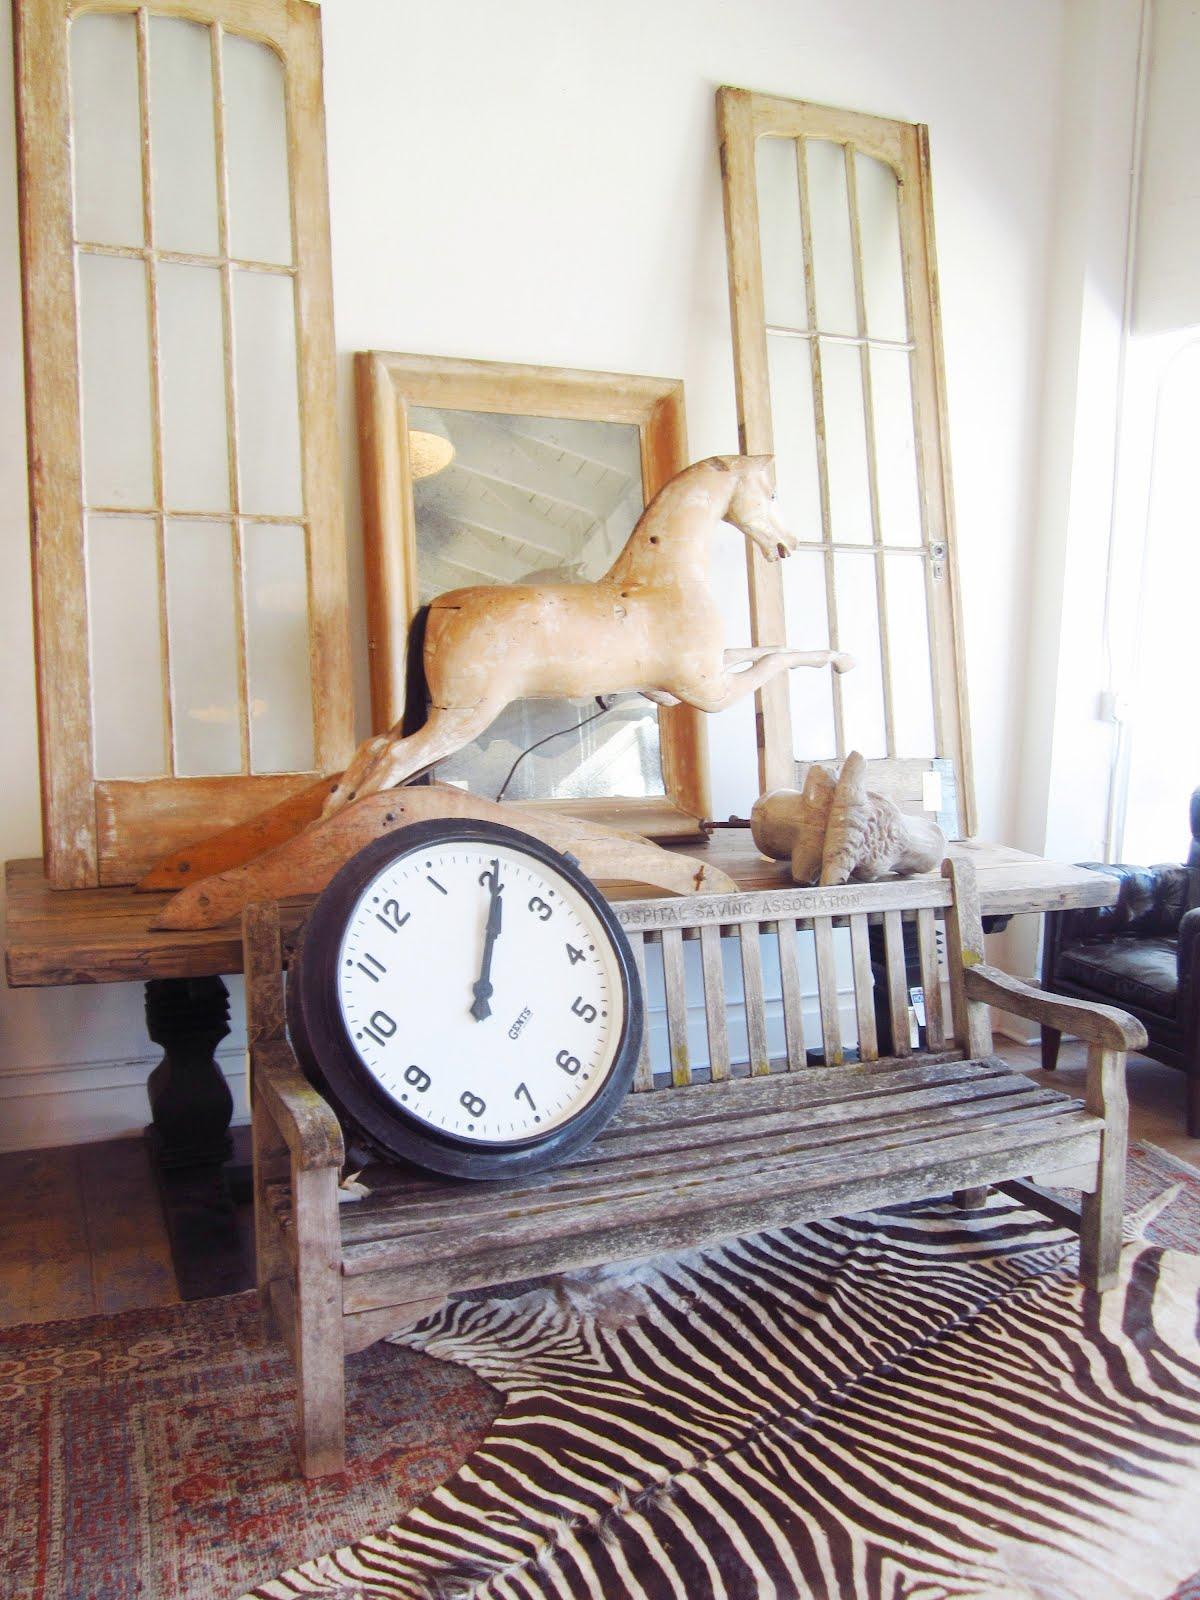 Brenda Antin Store In Los Angeles With A Reclaimed Wood Bench With A Large  Clock Sitting